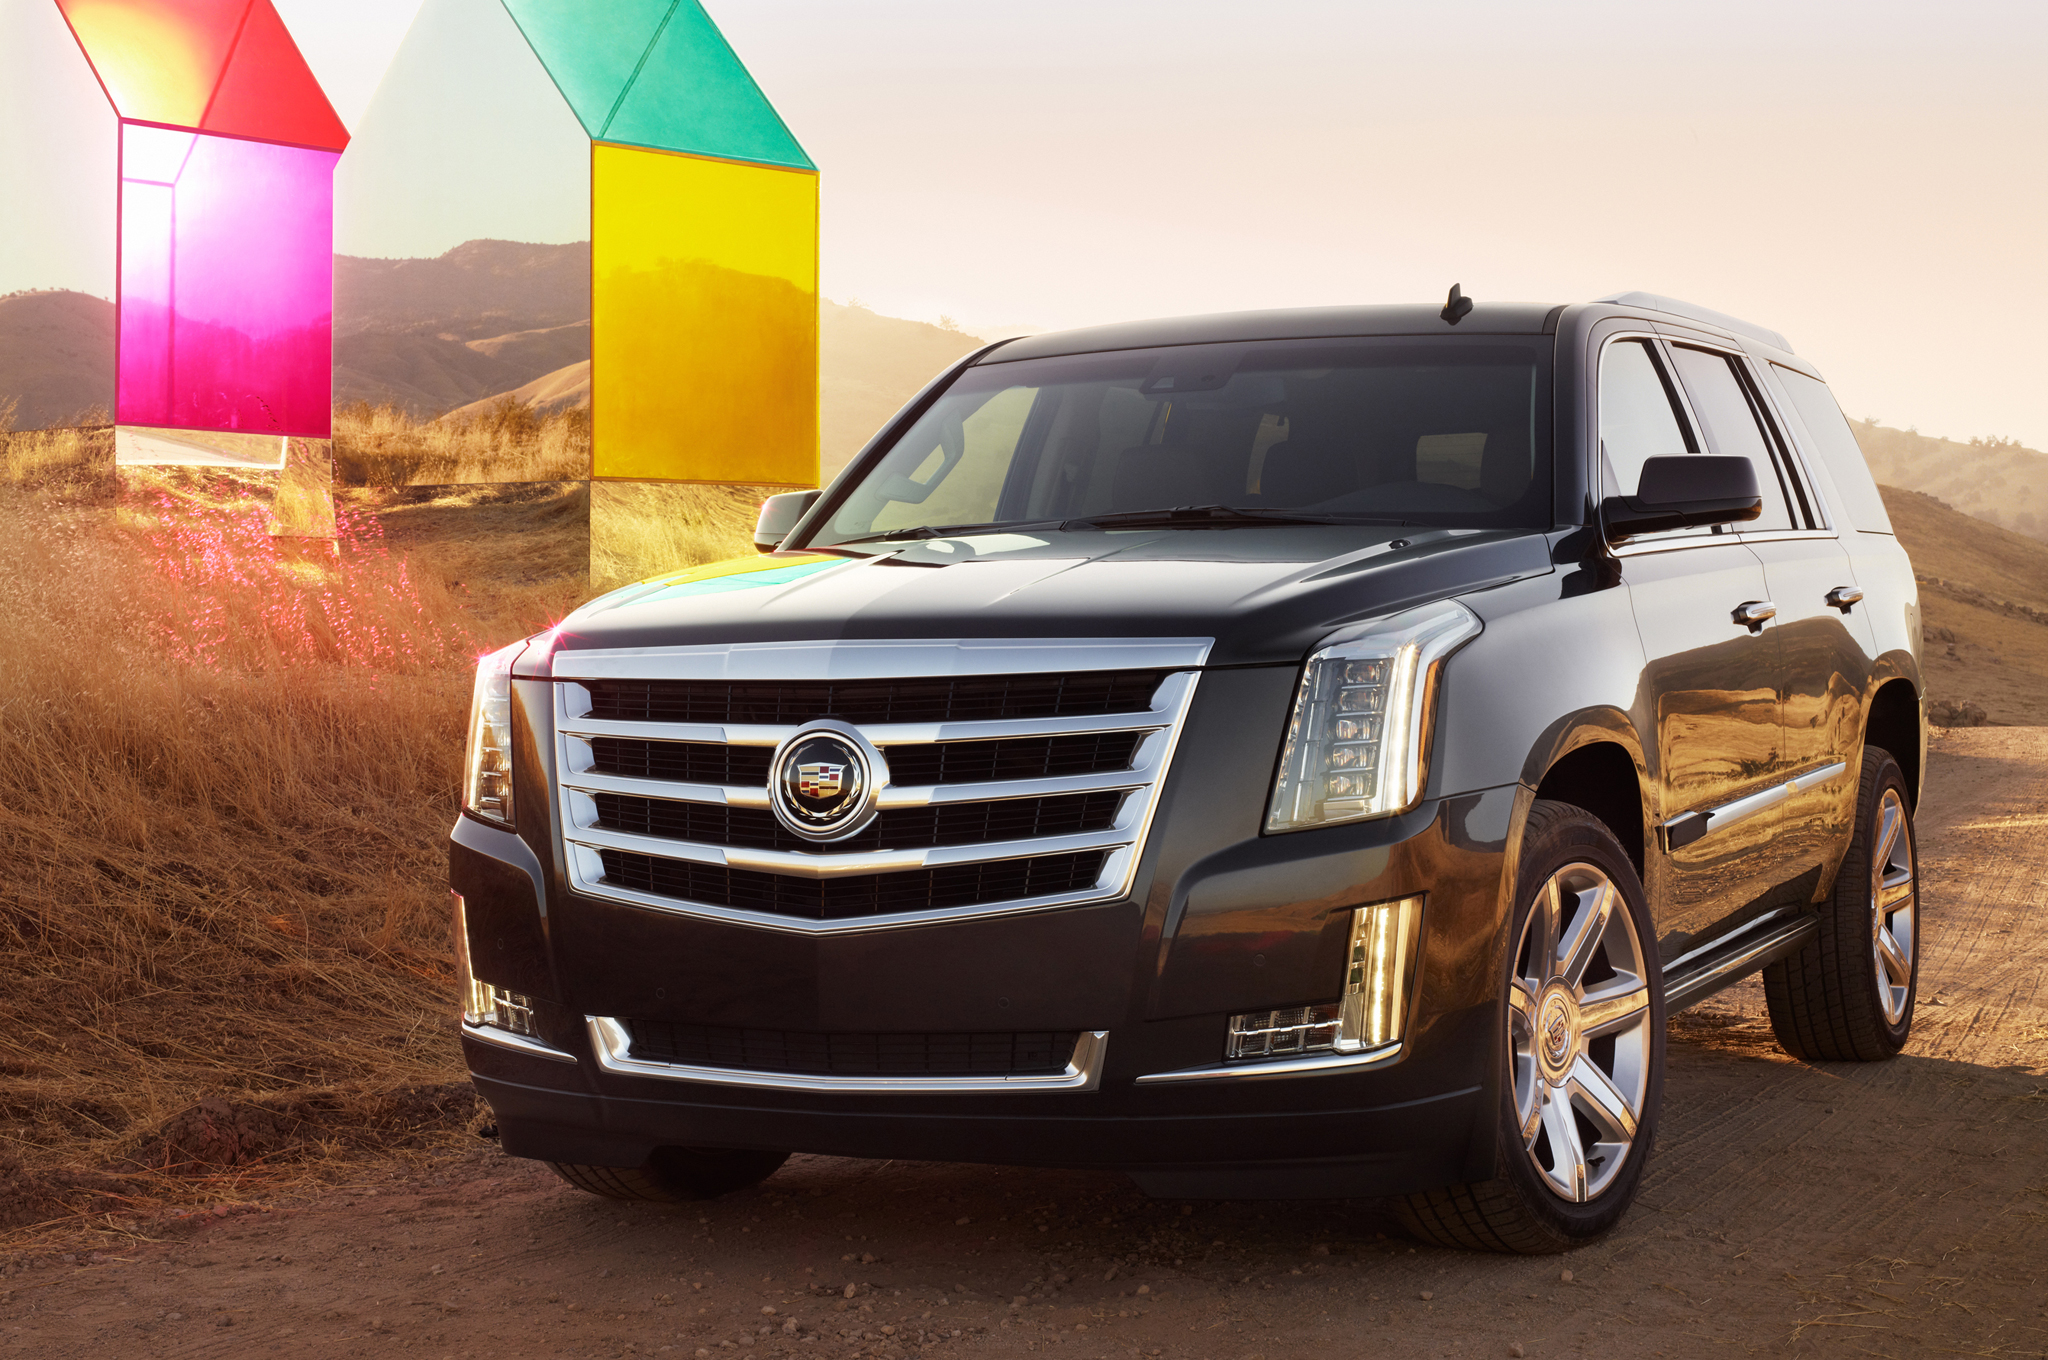 2015 Cadillac Escalade Starts at $72,690